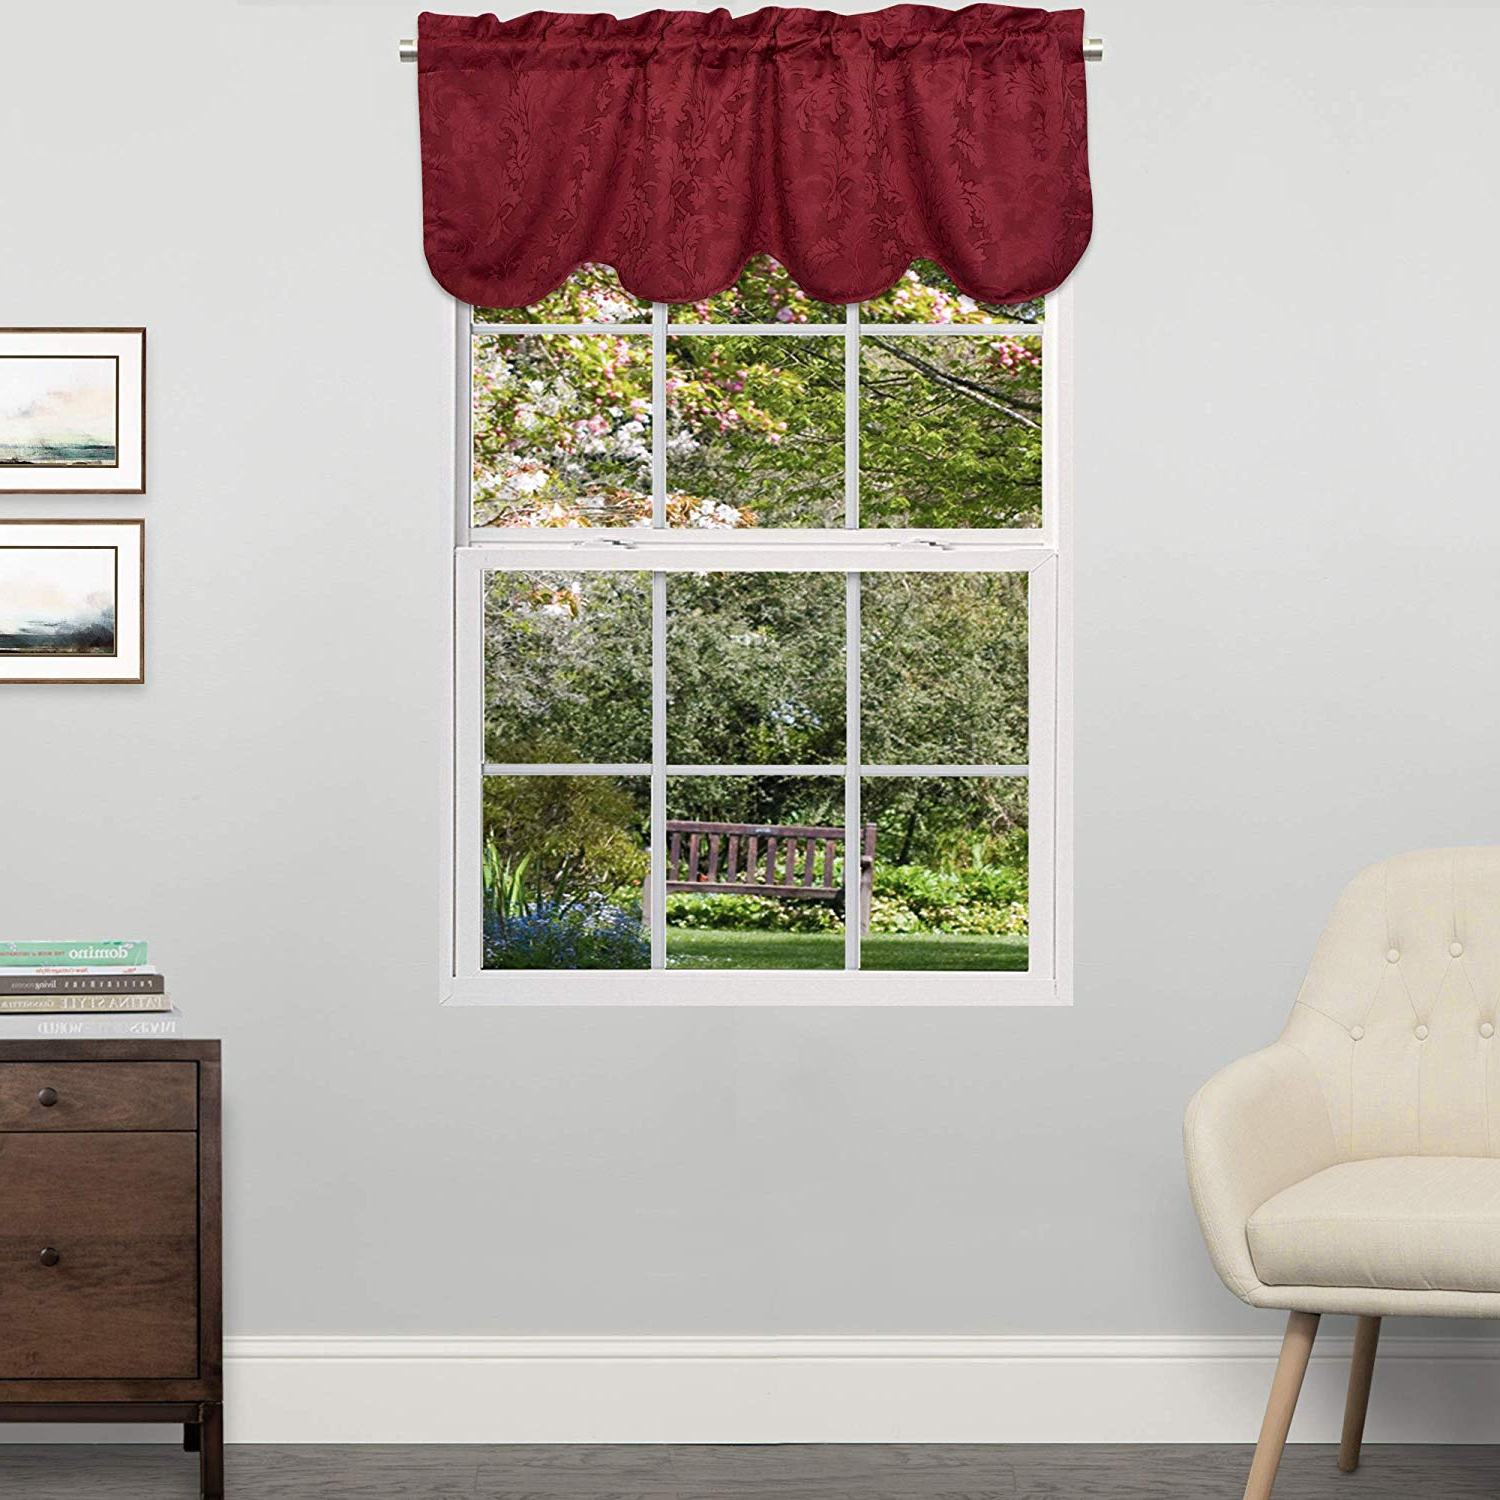 Fashionable Sweet Home Collection Cotton Kitchen Window Curtains Pair, Valance,  Adirondack Toast In Cotton Classic Toast Window Pane Pattern And Crotchet Trim Tiers (Gallery 7 of 20)